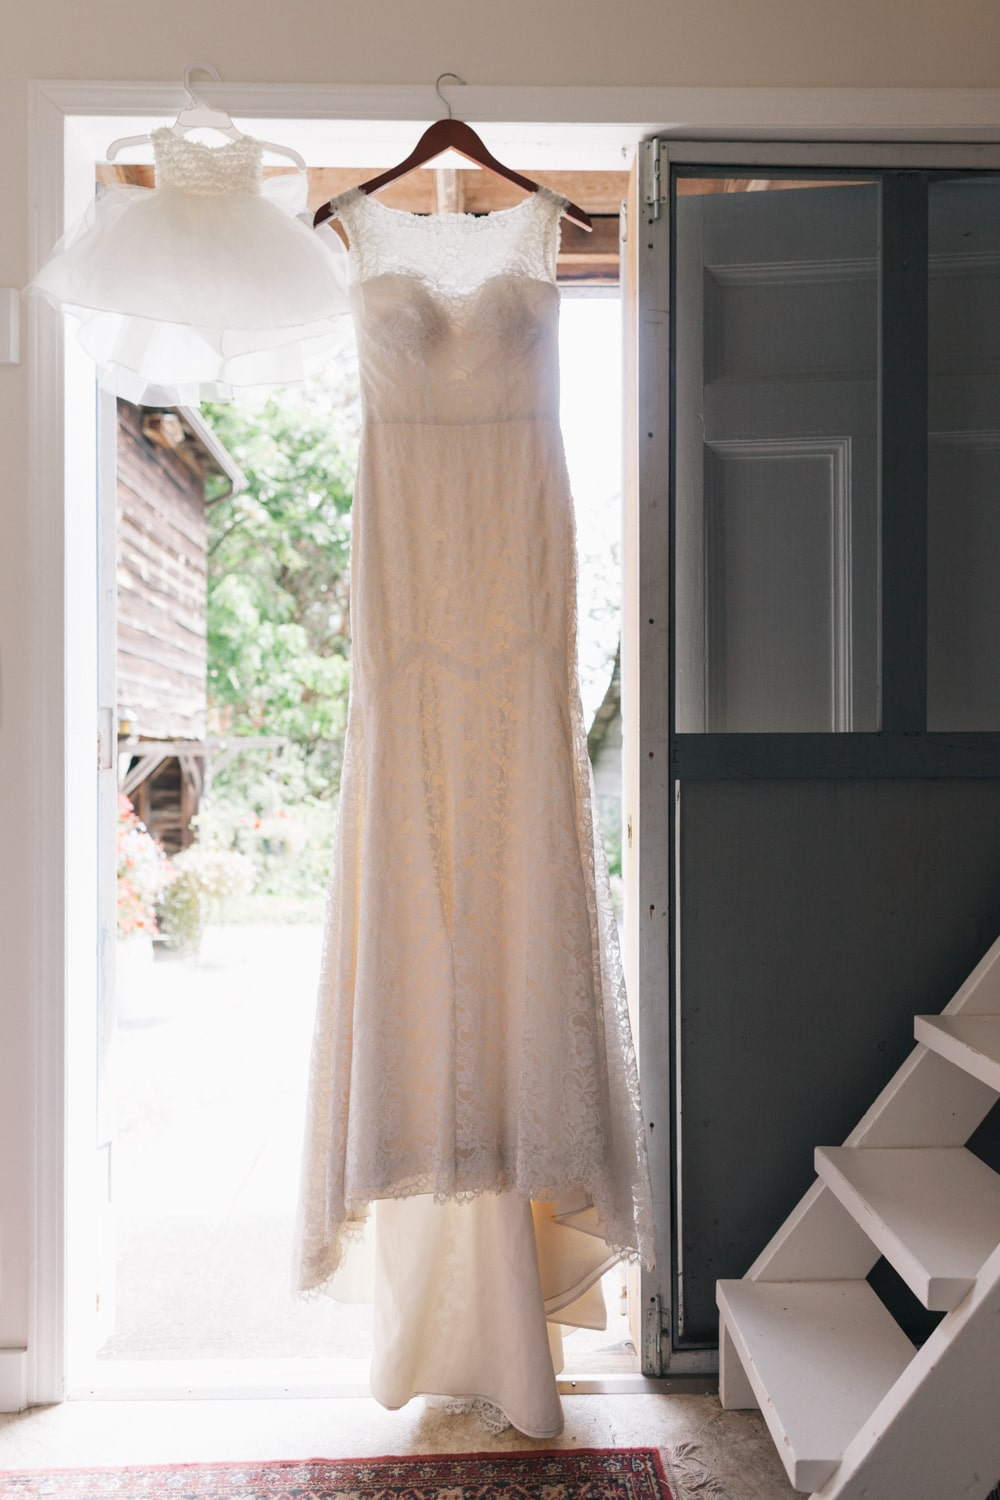 dress hanging  at Starling lane wedding venue by Marlboro Wang Photo for Focal bookfocal.com